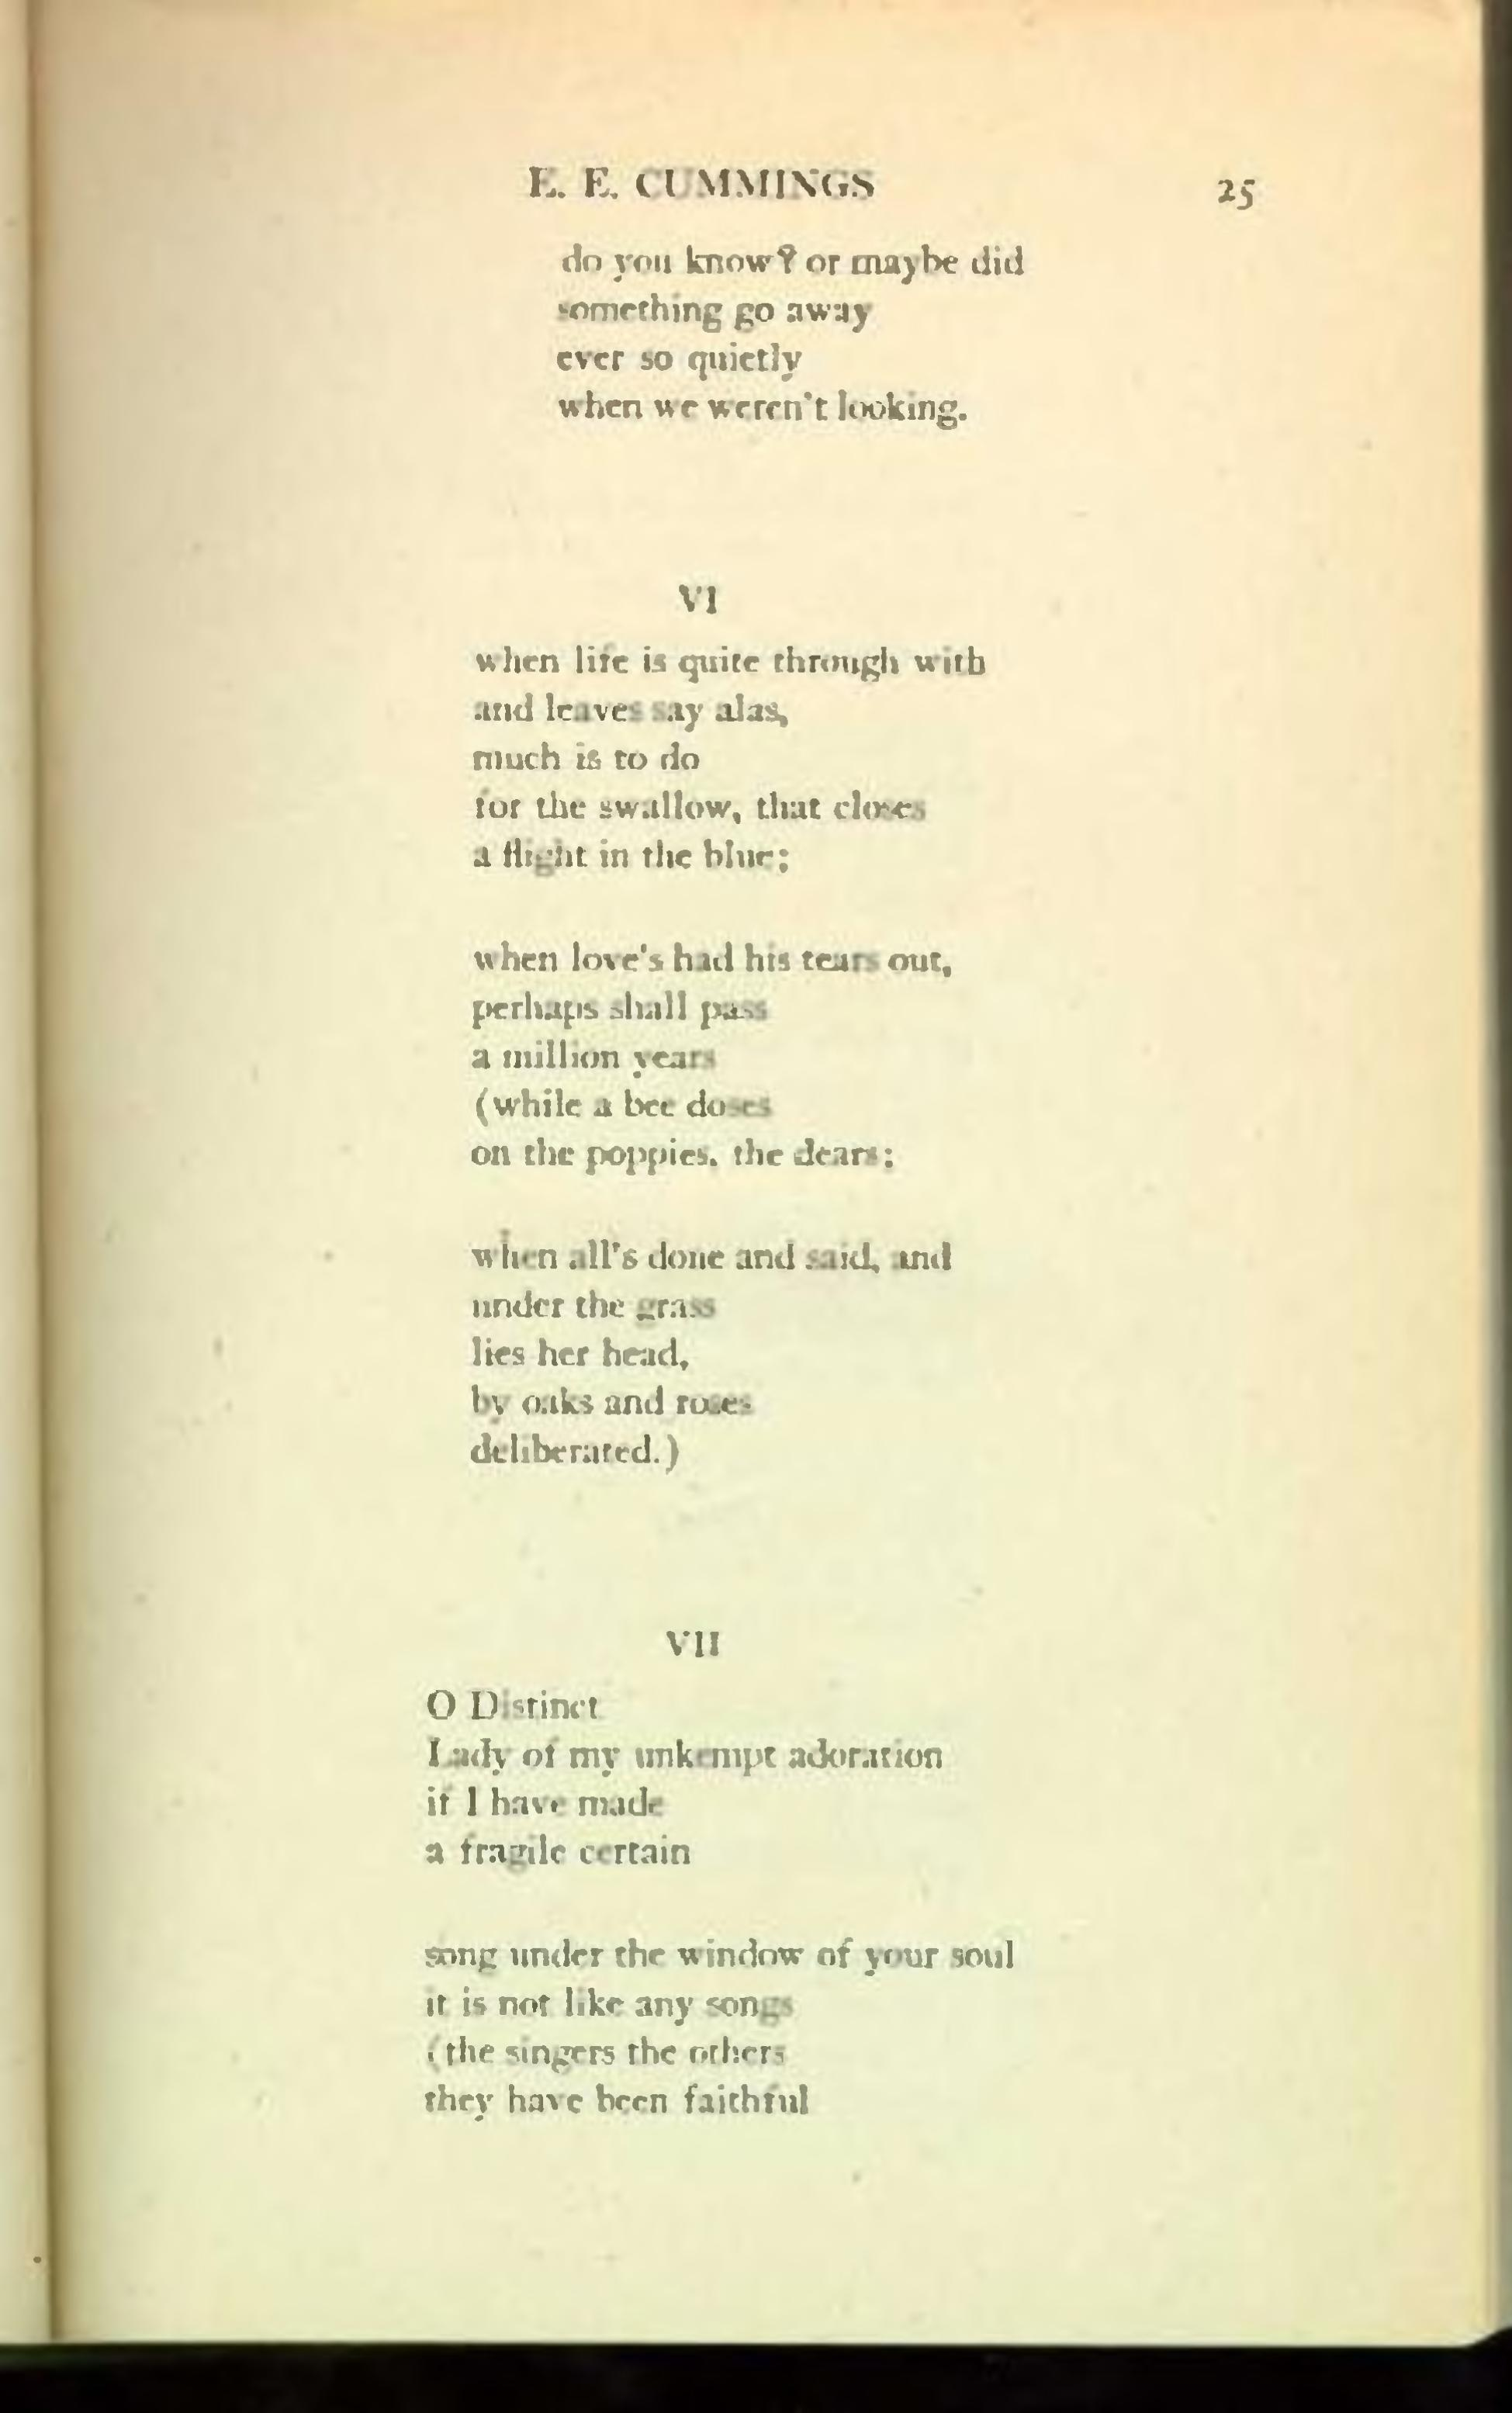 ee cummings poetry Poem hunter all poems of by edward estlin cummings poems 45 poems of edward estlin cummings phenomenal woman, still i rise, the road not taken, if you forget me, dreams.